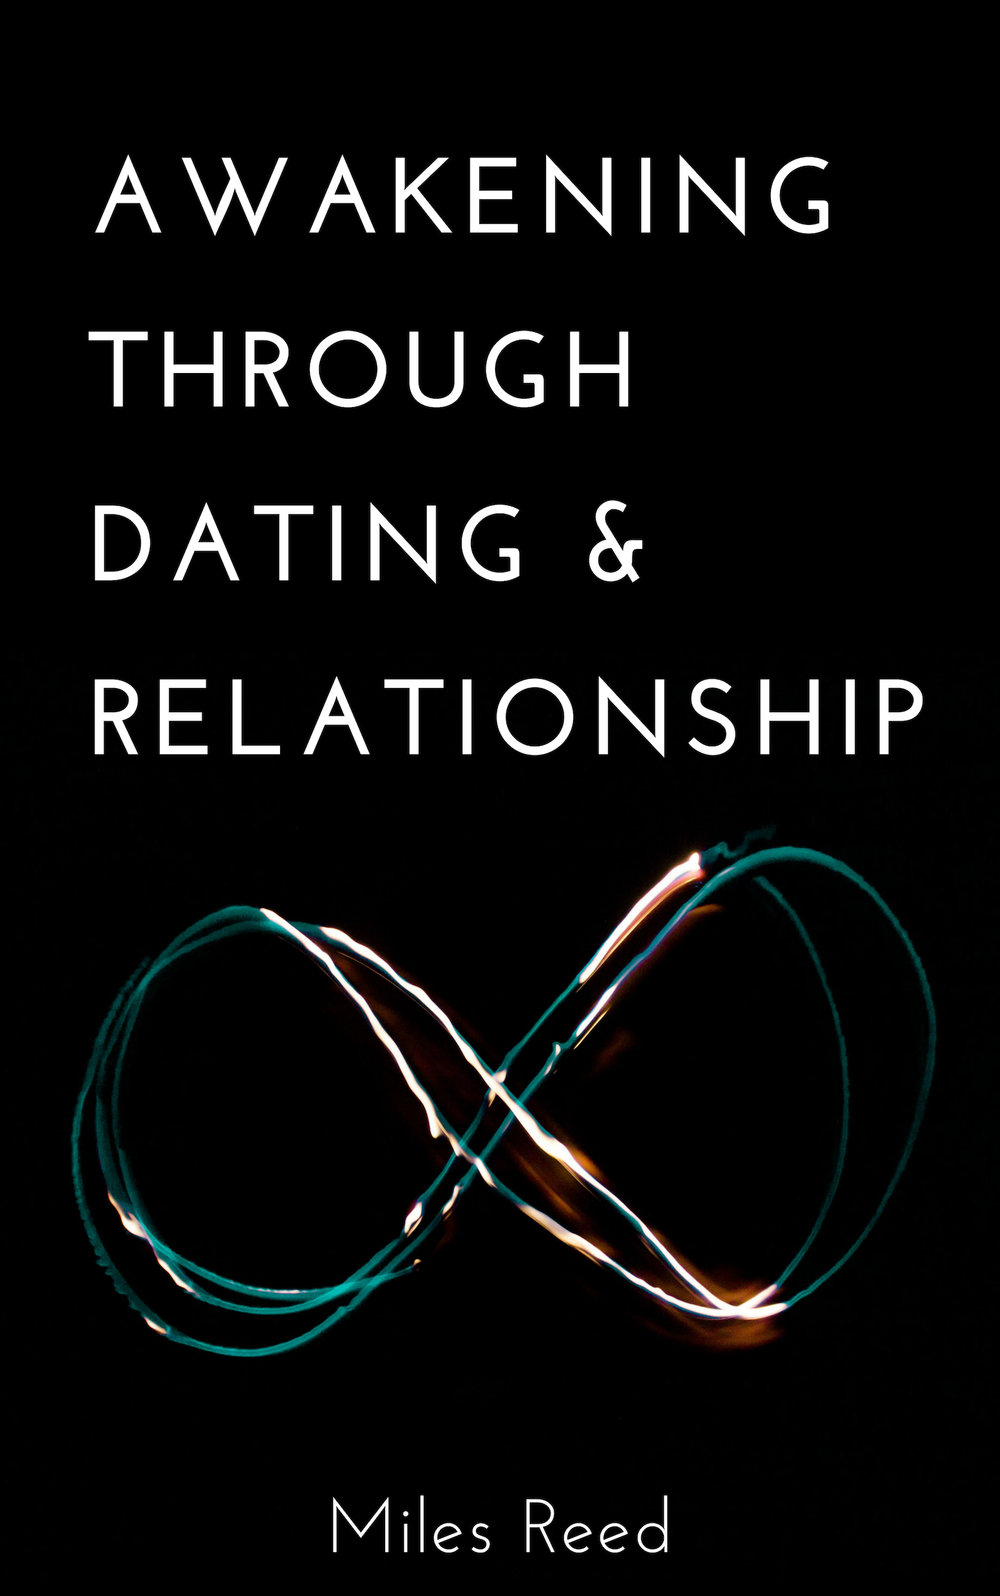 AWAKENINGTHROUGHDATING &RELATIONSHIP-2.jpg